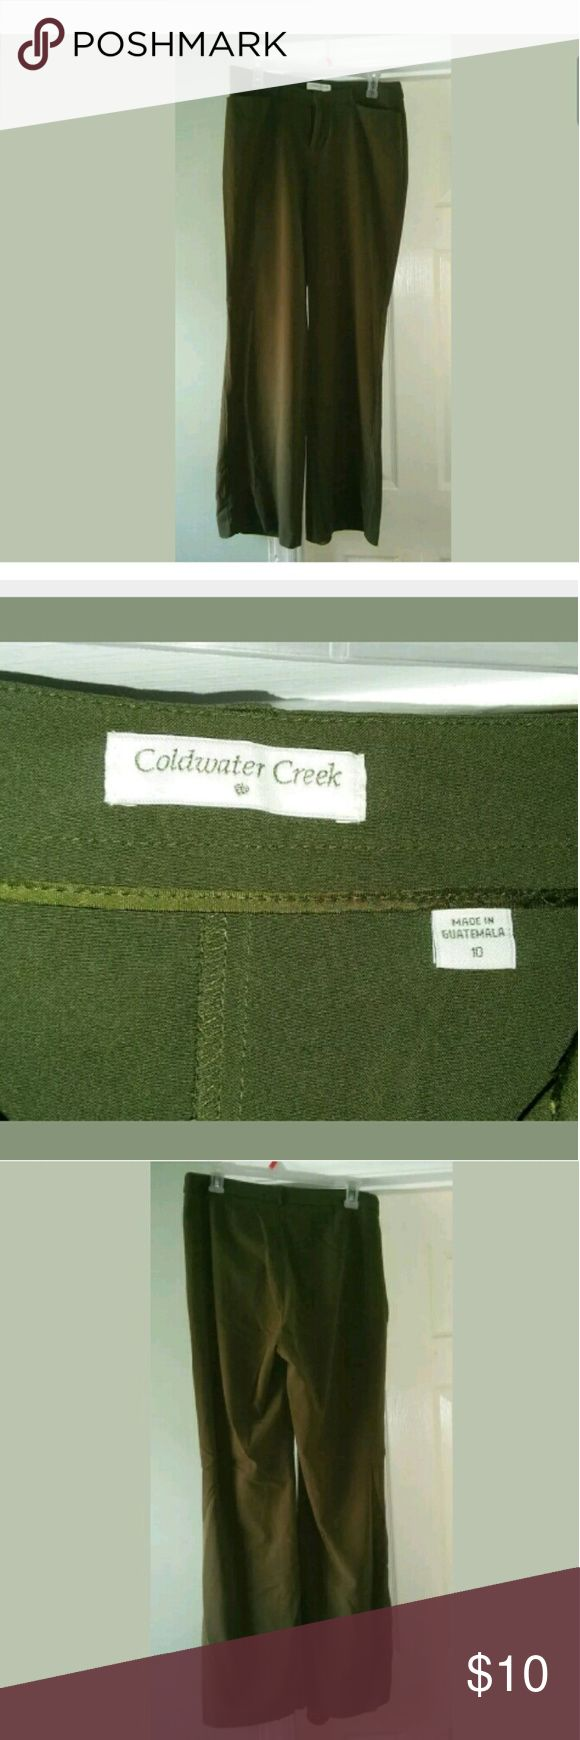 Coldwater Creek Dress Pants Size 10 COLDWATER CREEK Women Dress Pants Olive Green Flare Pants Size 10 Coldwater Creek Pants Trousers